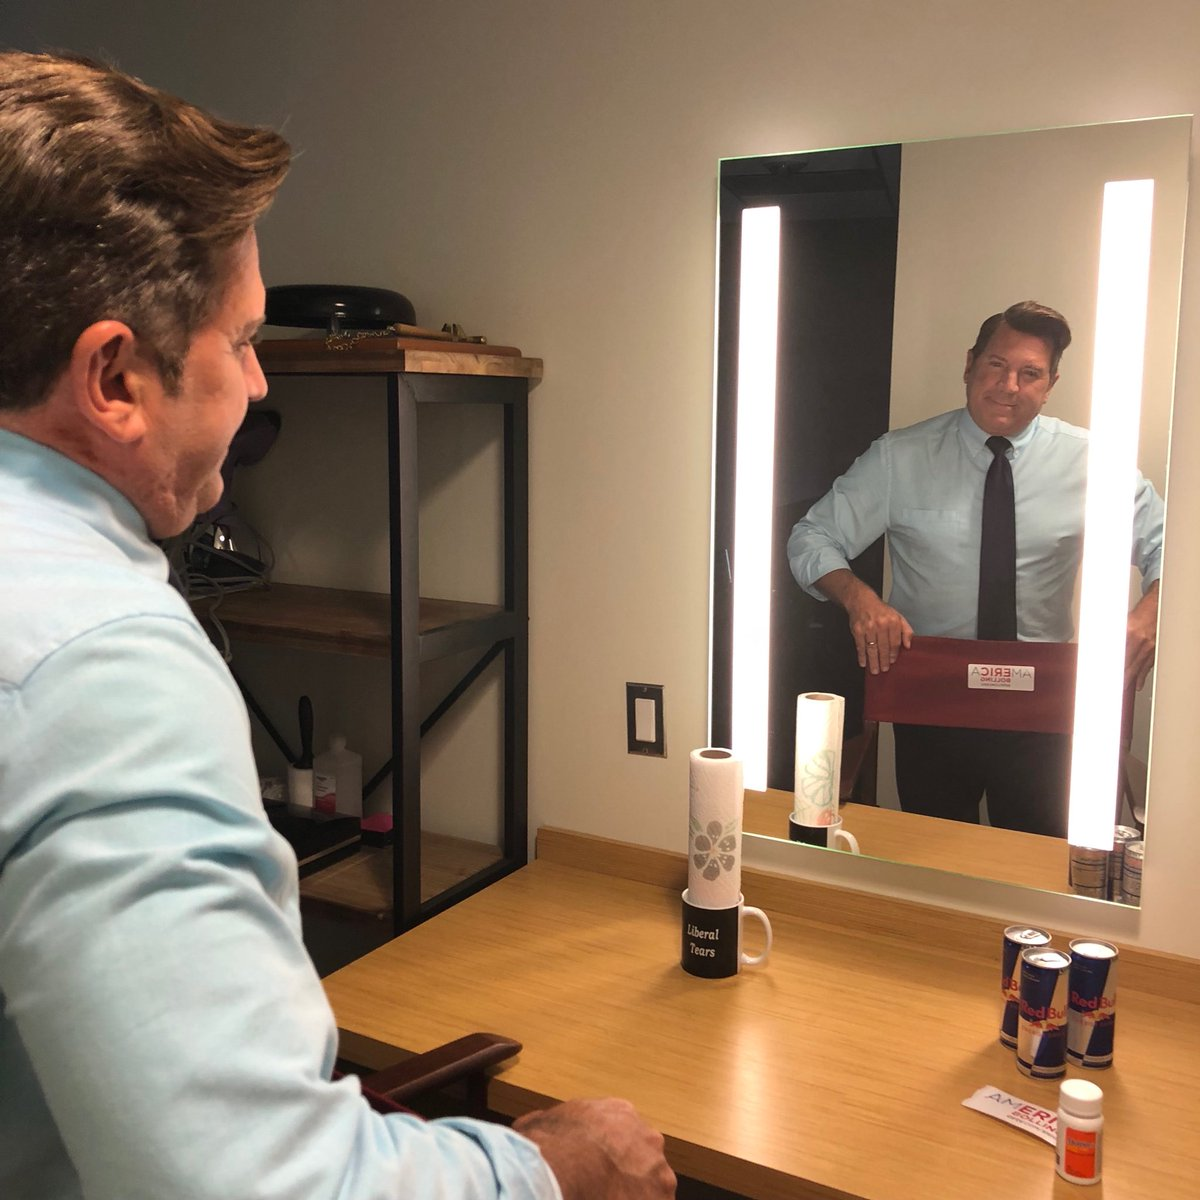 Getting ready to bring some #realnews to #AMericA with @ericbolling #nottheenemy